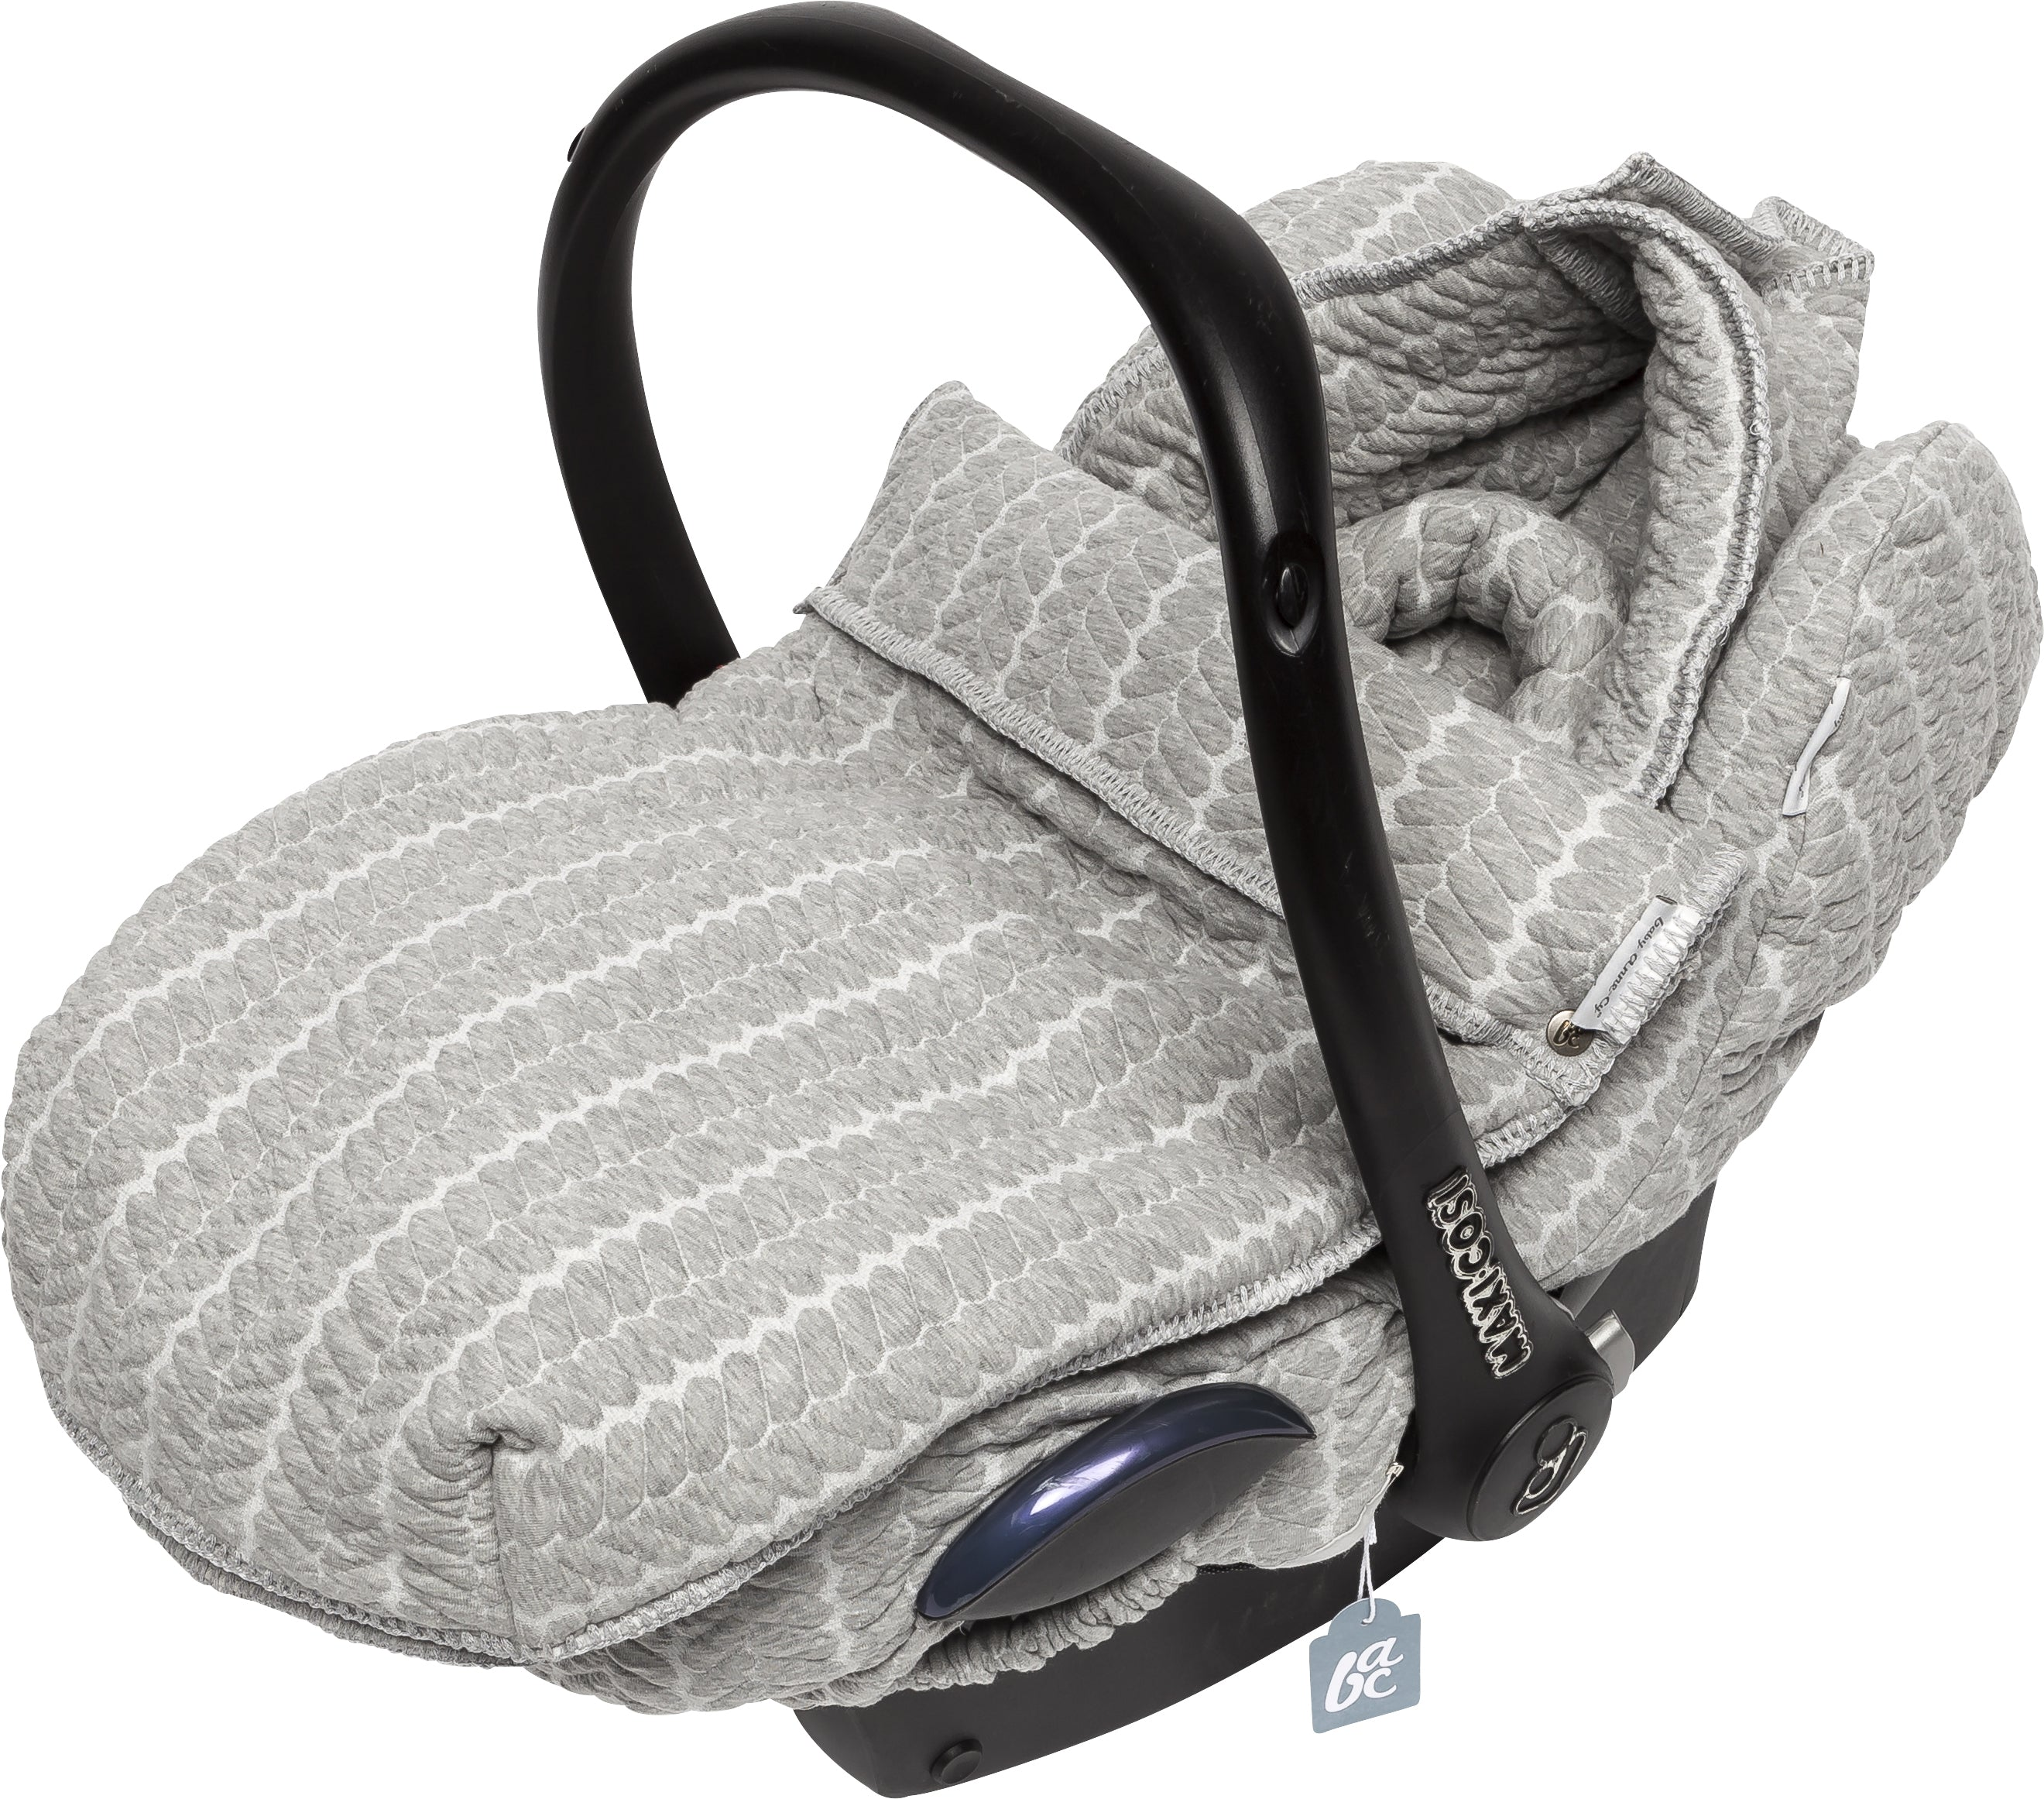 Autostoelhoes butterfly cable grey melange - Baby Anne-Cy